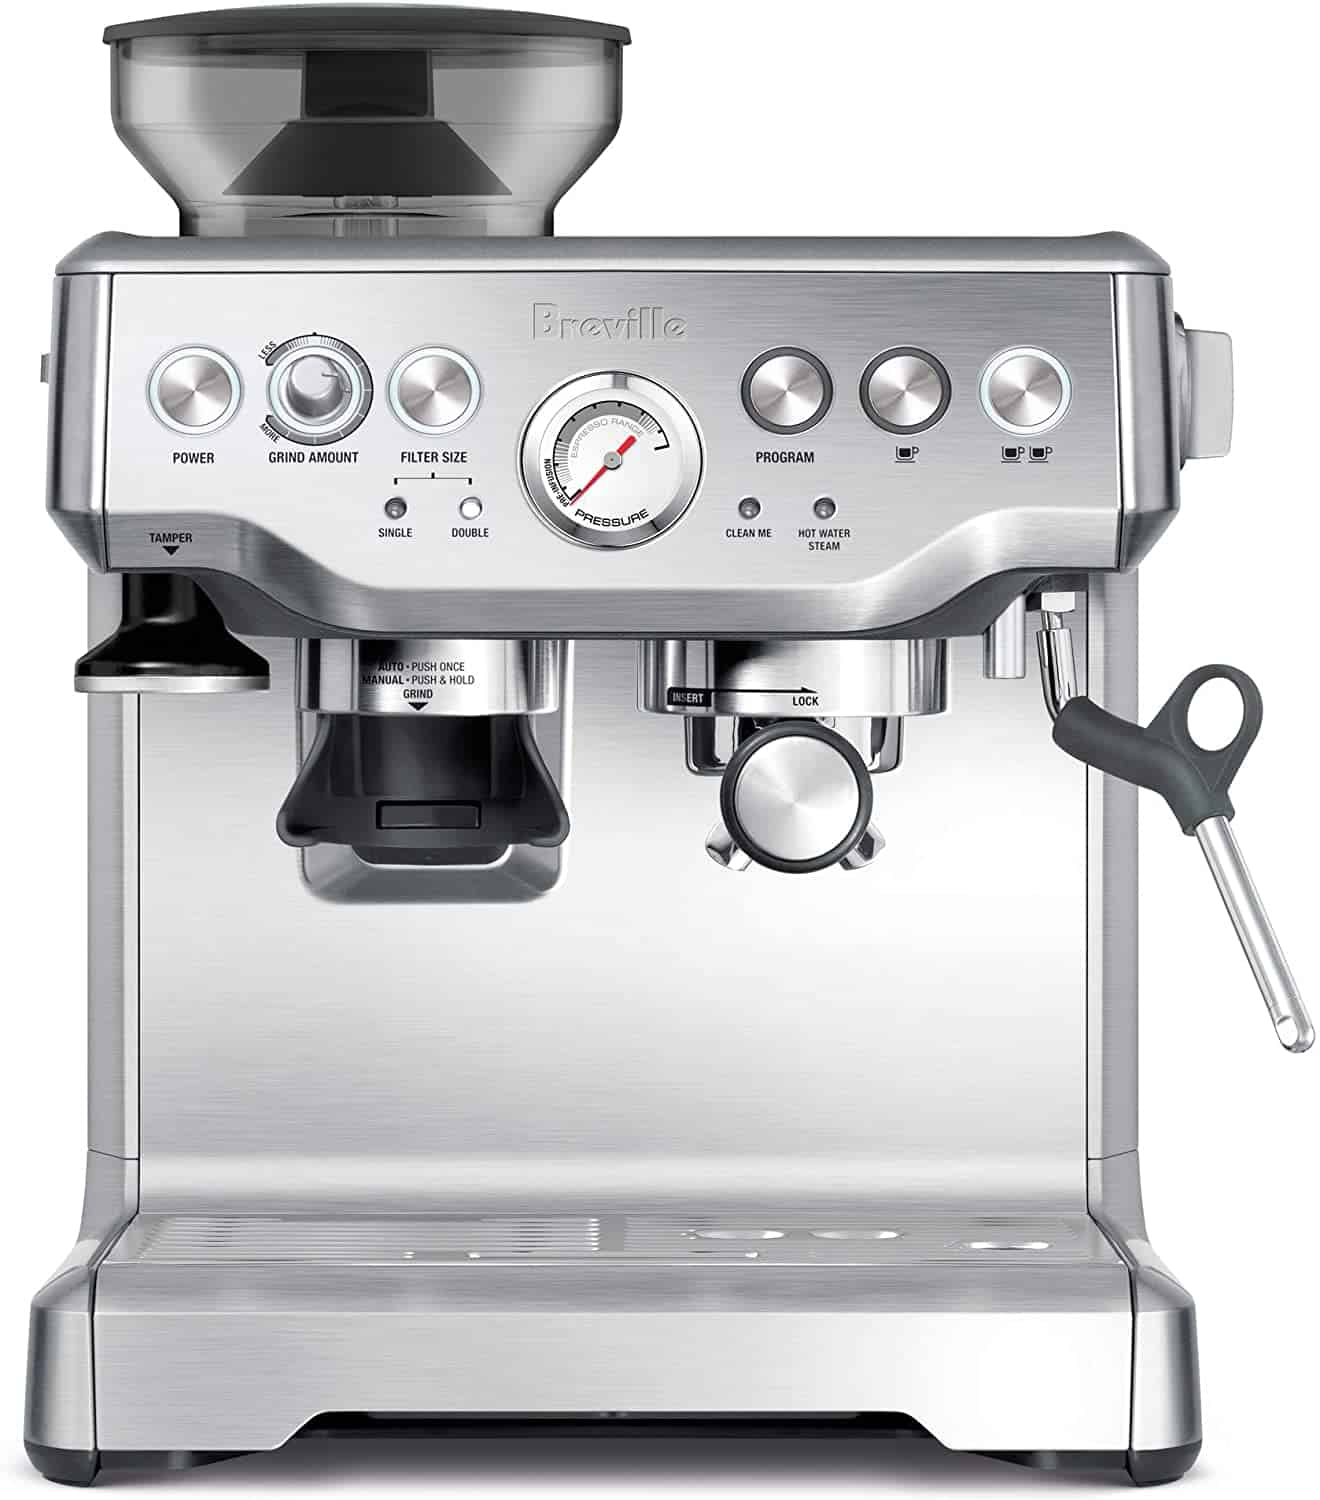 Breville Barista Express Bean to Cup Coffee Maker